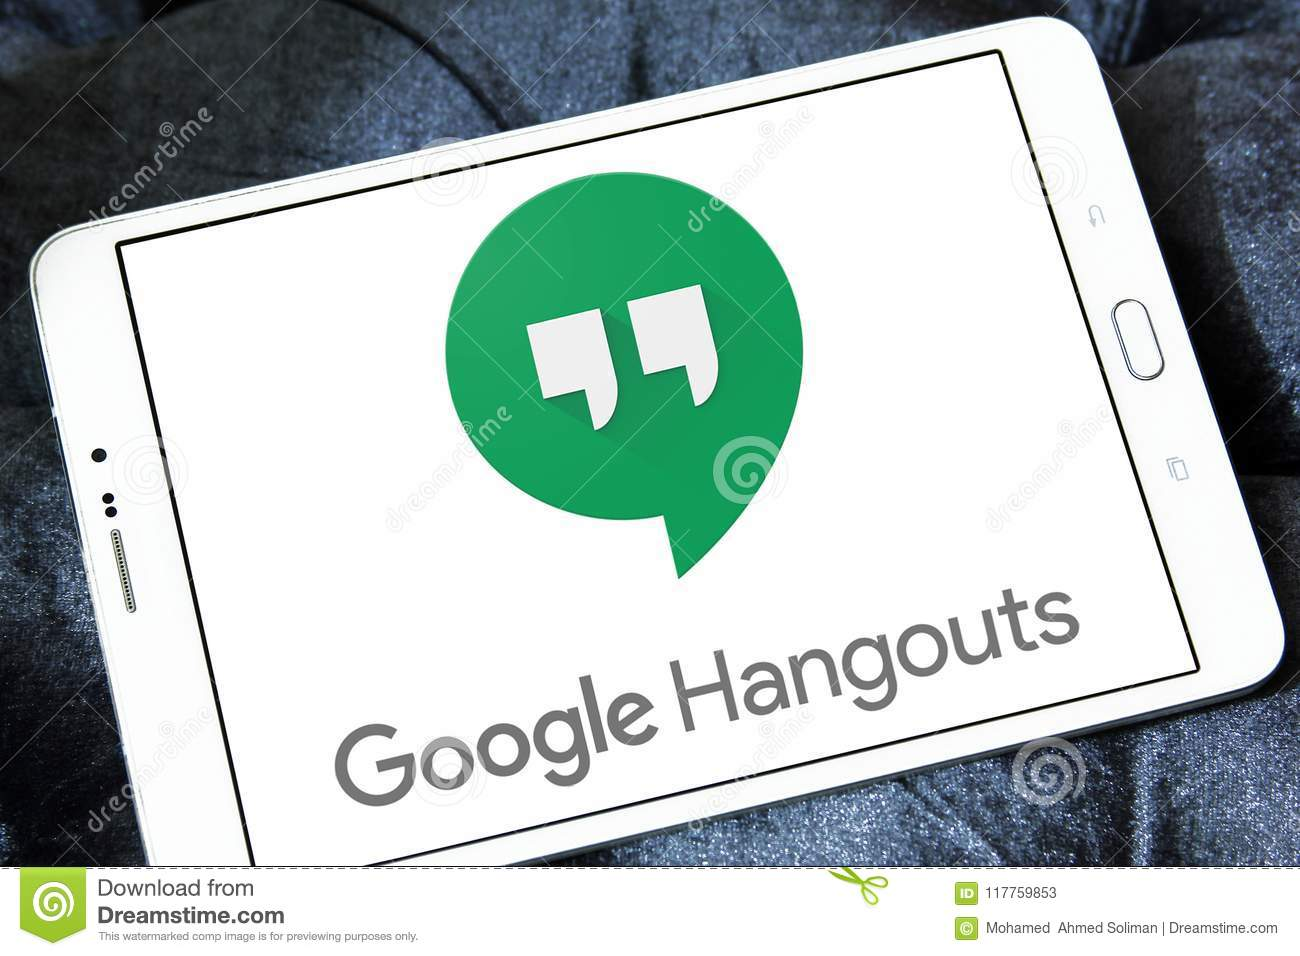 Google Hangouts logo editorial stock photo  Image of free - 117759853